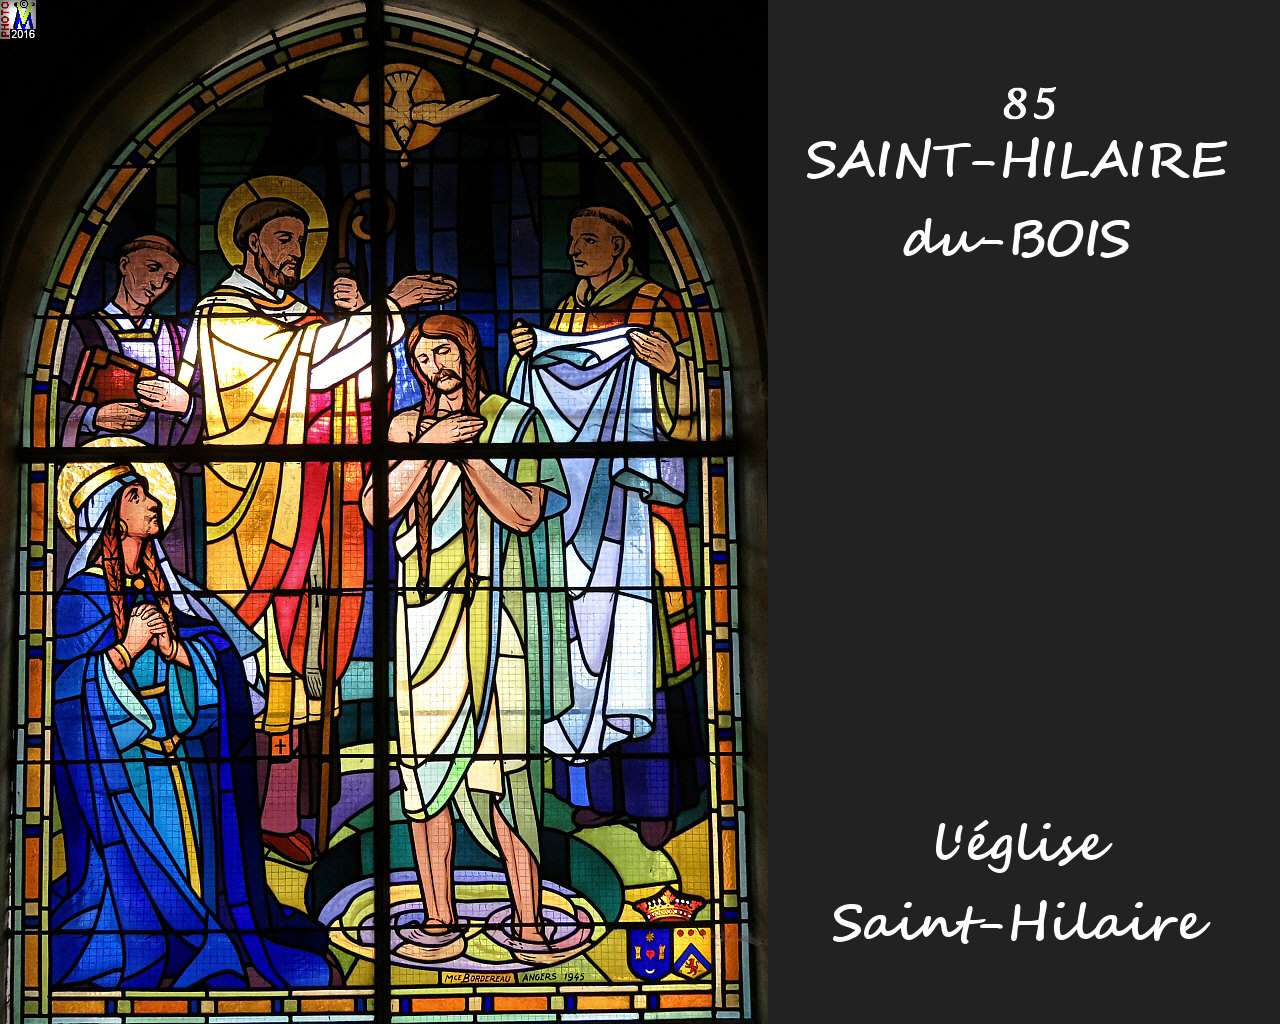 85CAILLERE-StHILAIRE-HILAIRE_eglise_1210.jpg